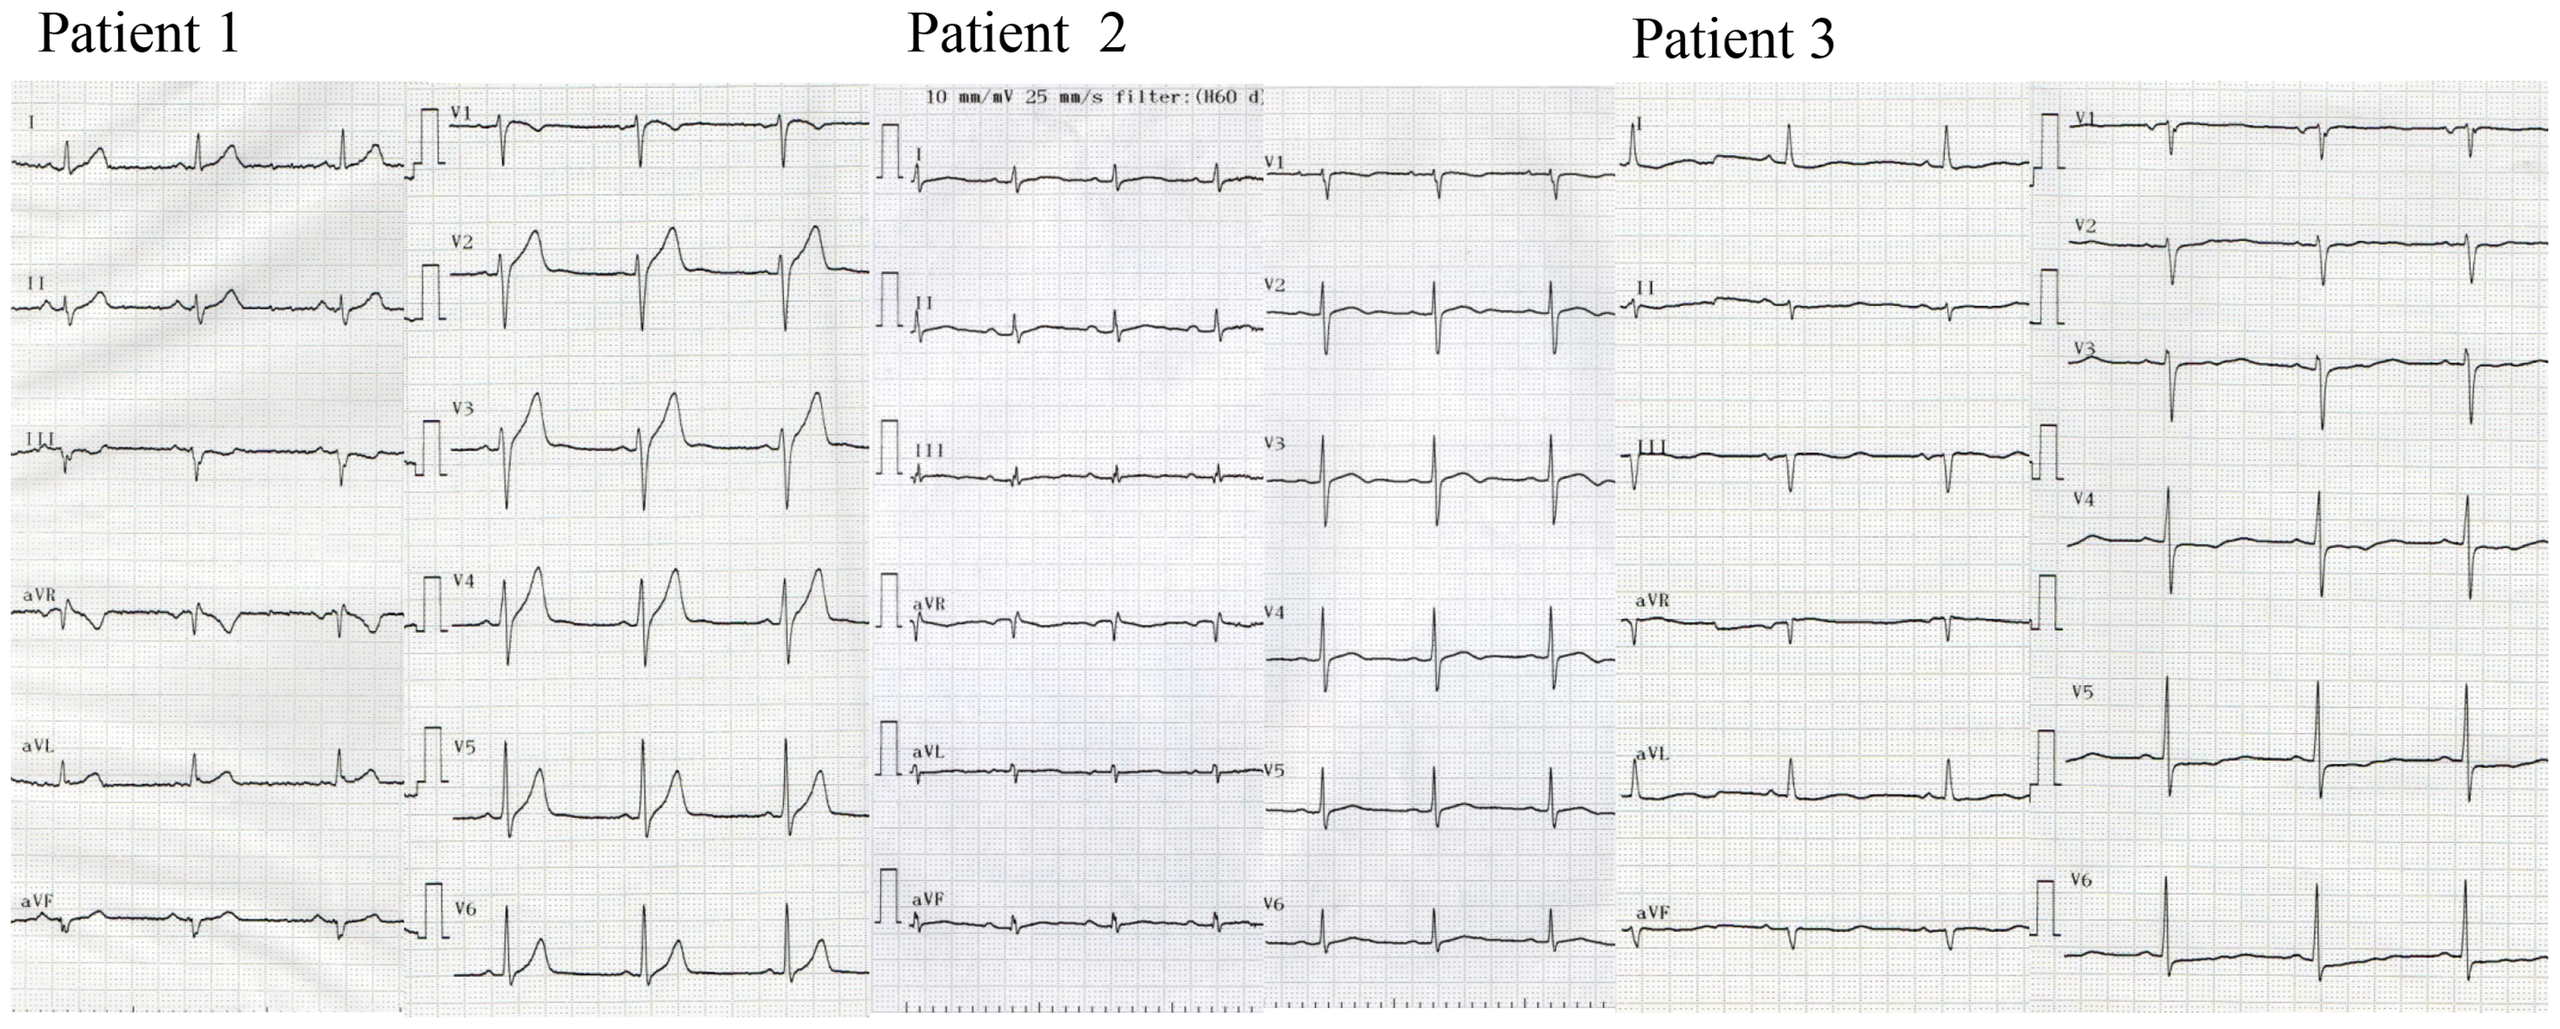 Twelve-lead ECG of patients with <i>SEMA3A</i><sup>I334V</sup>.